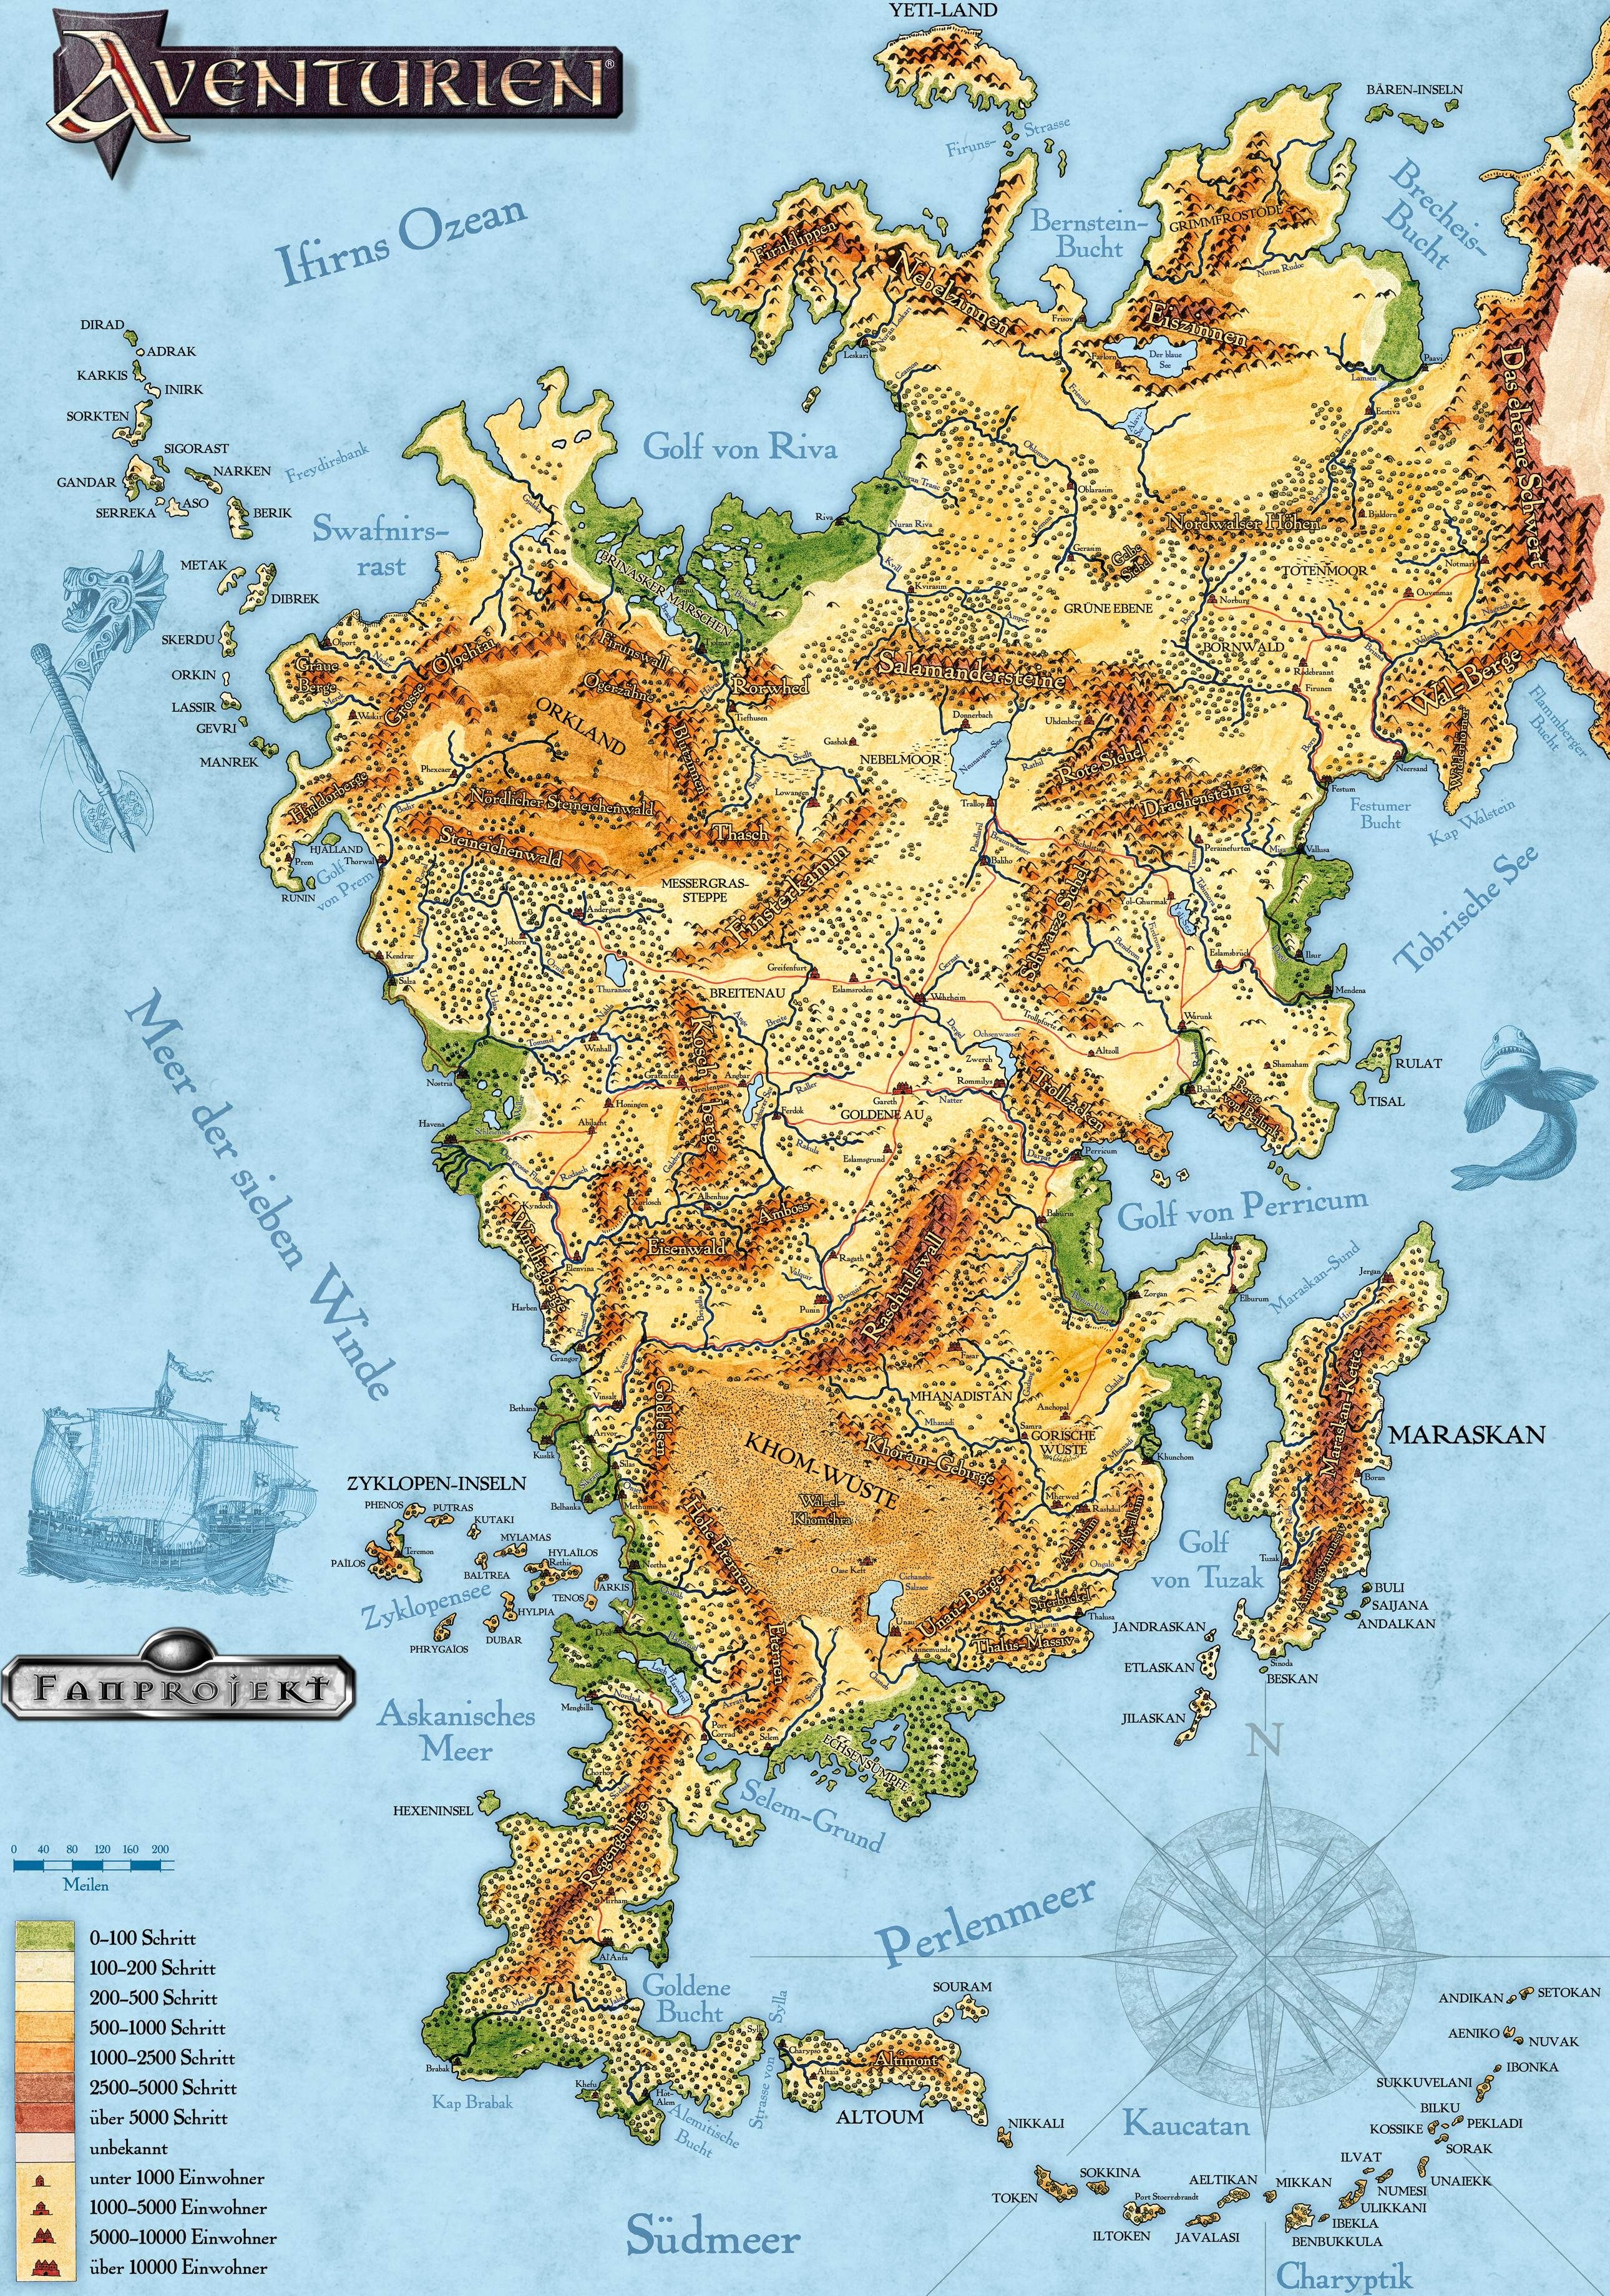 Fantasy Life World Map.Pin By Bailey Poletti On Maps Fantasy Map Imaginary Maps Map Layout